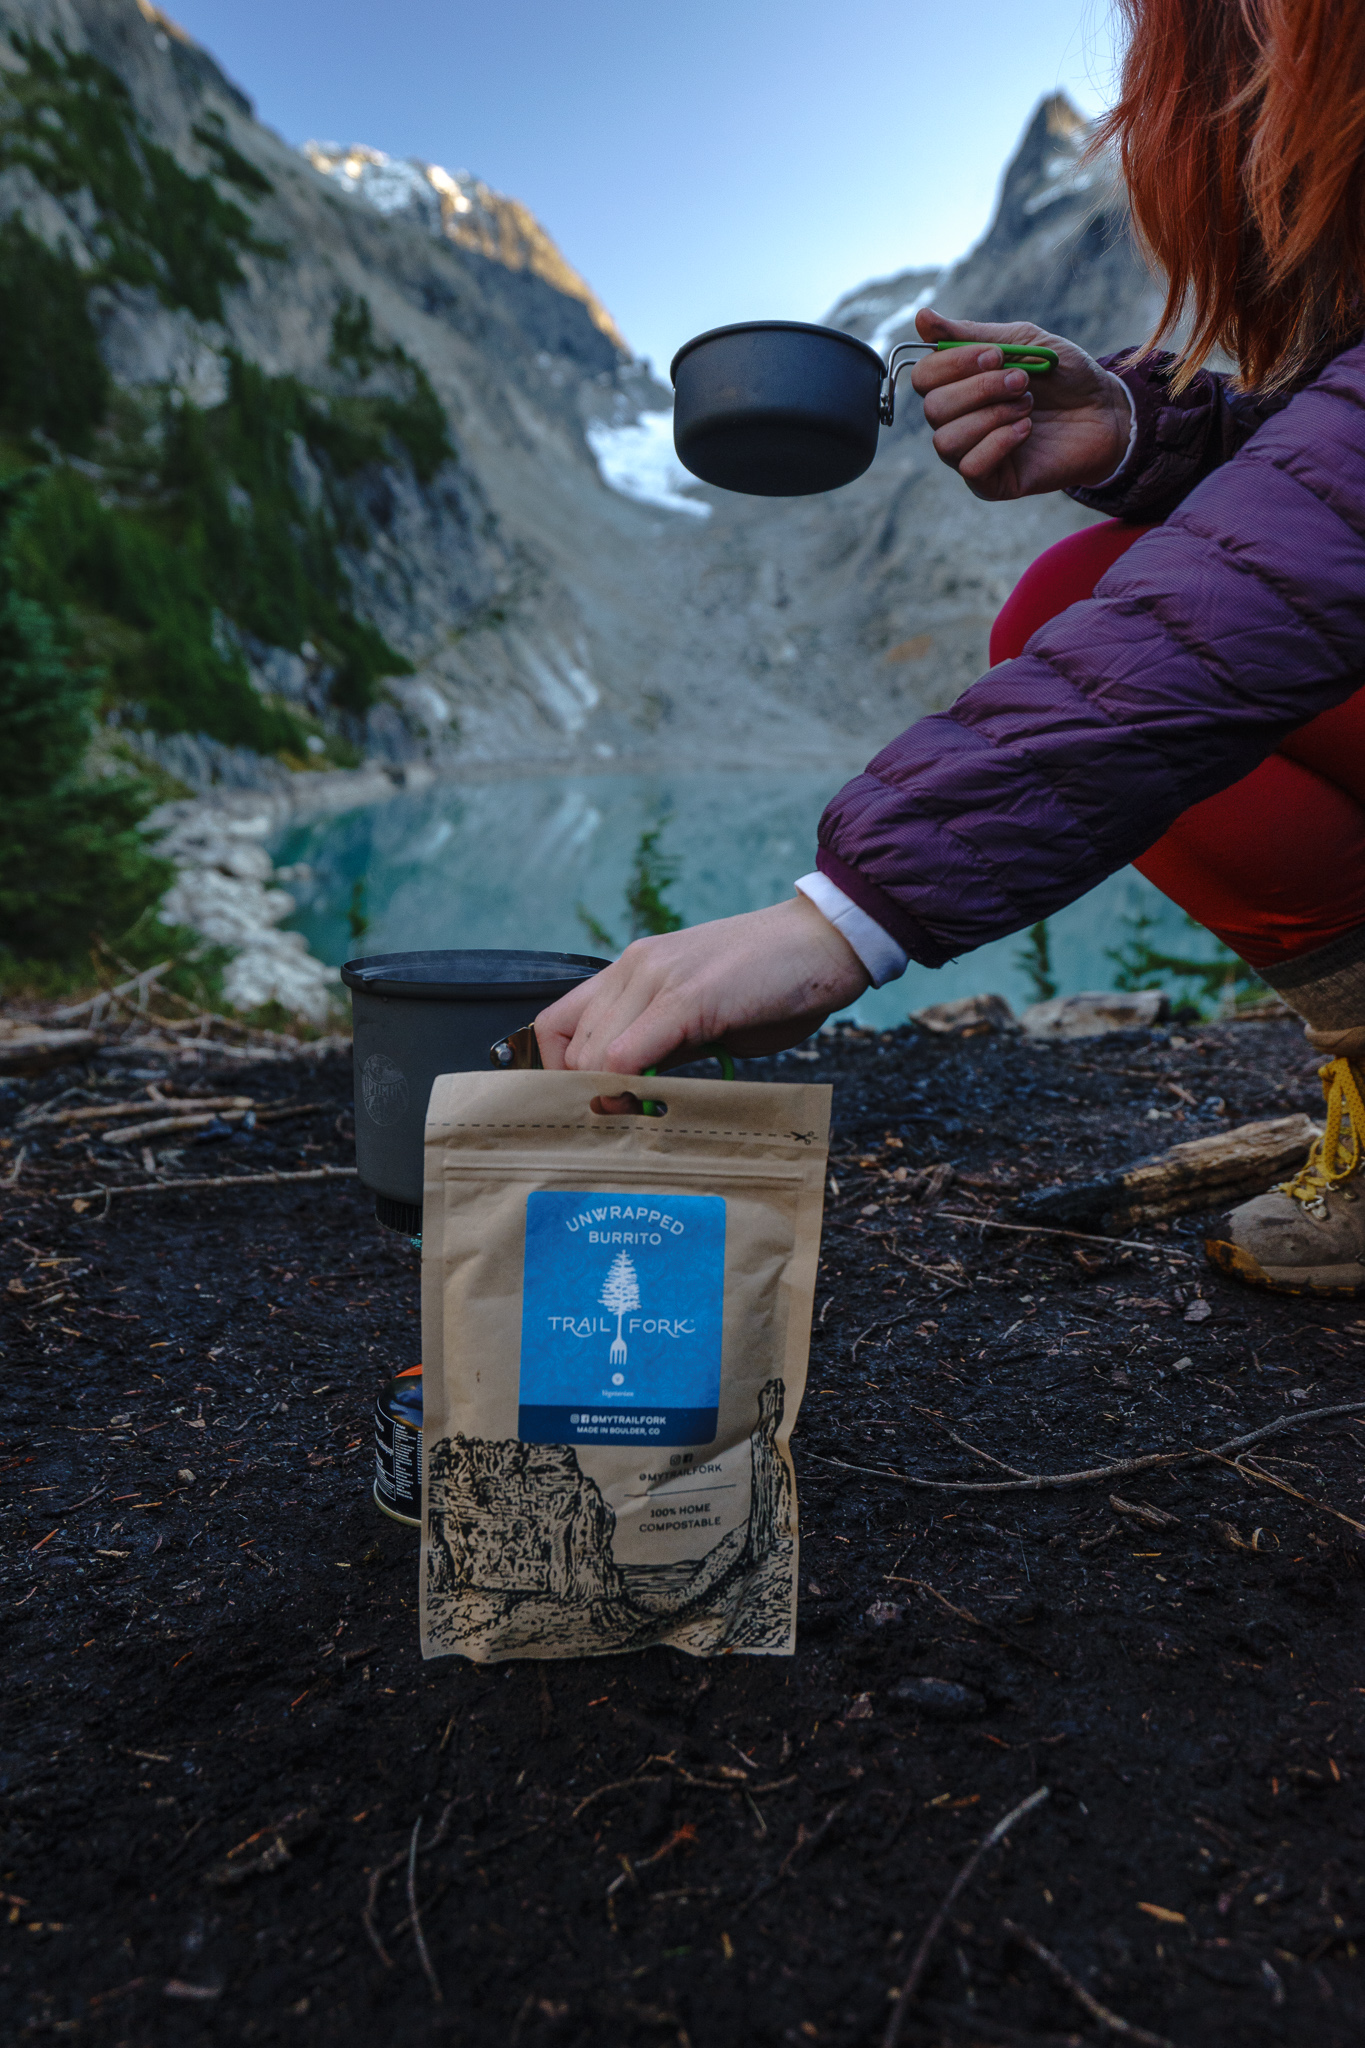 Trailfork backpacking meals. So good. I really liked the Unwrapped Burrito!